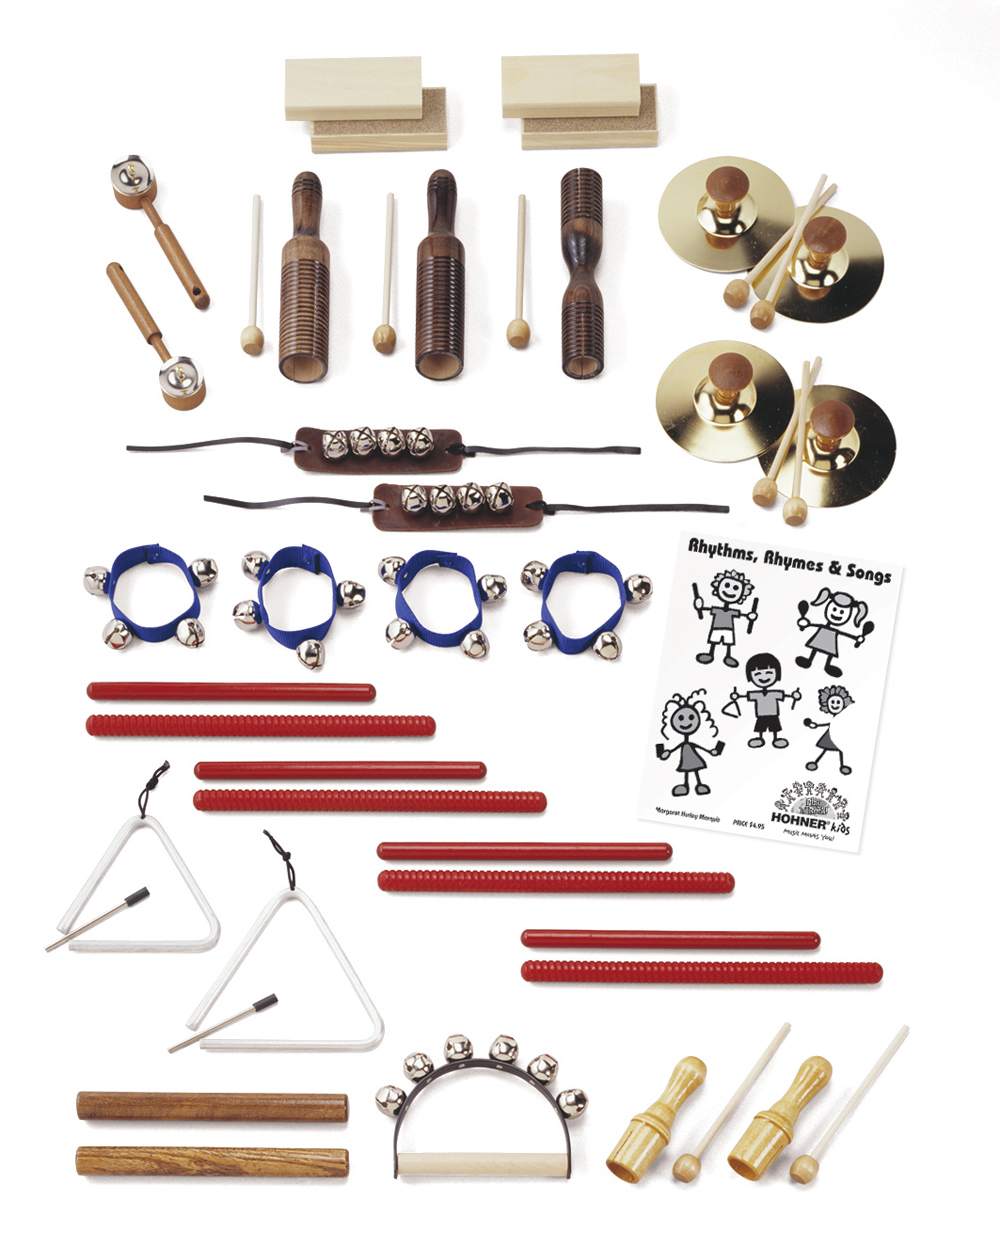 25 Player Rhythm Instrument Set